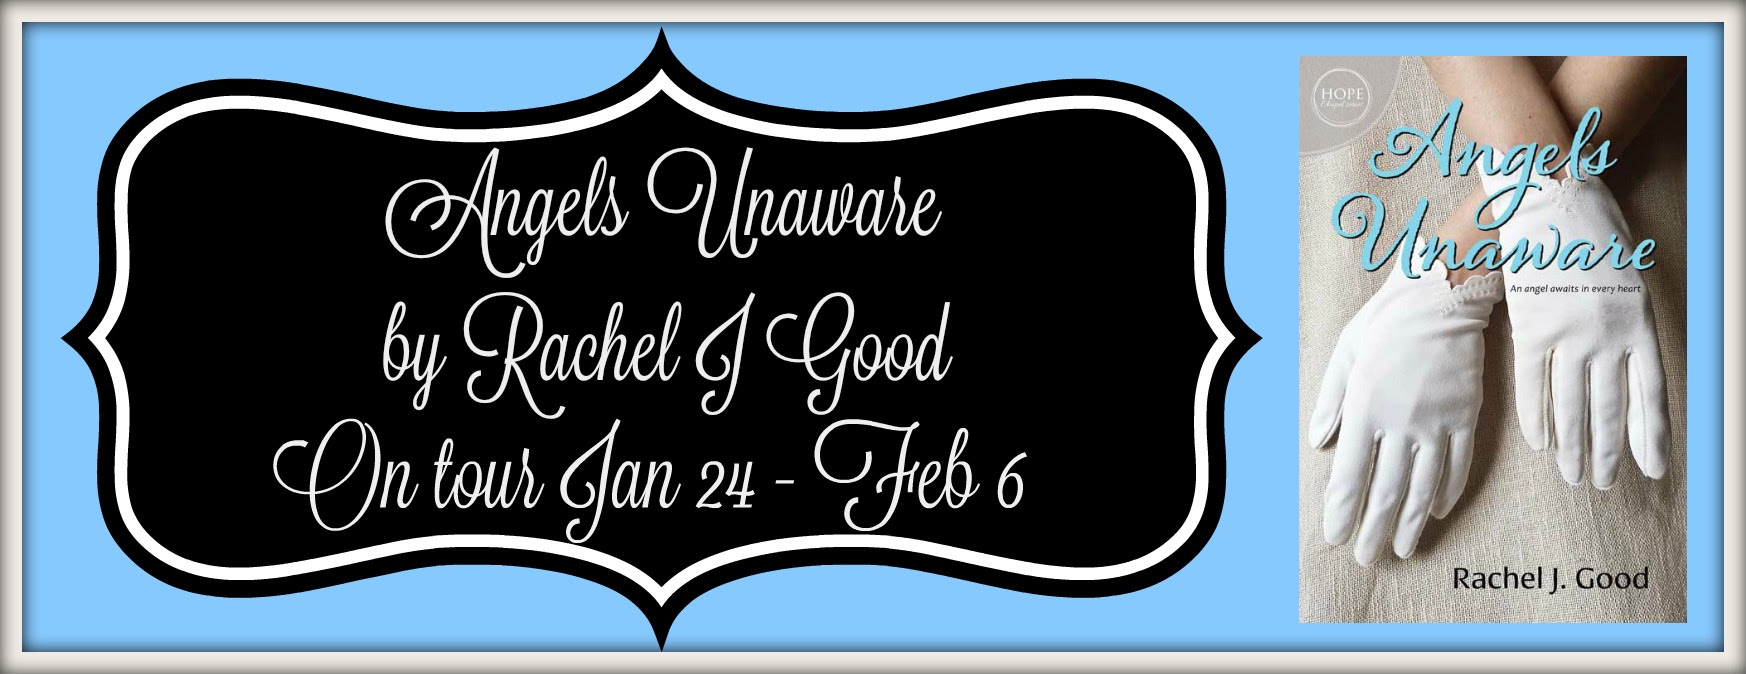 angels-unaware-fb-banner